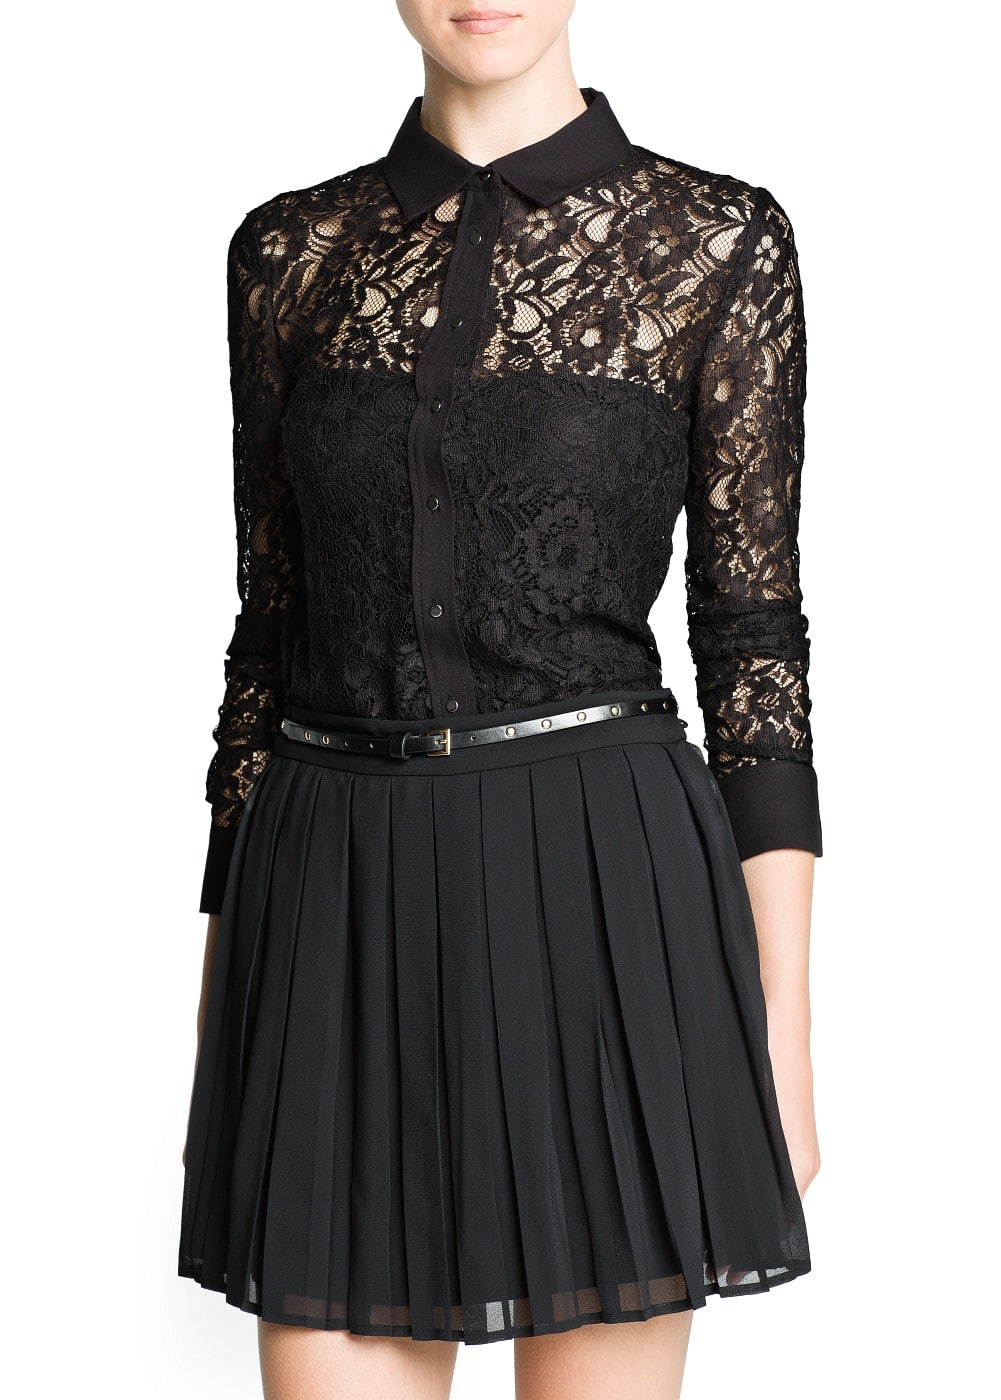 Contrast detail lace blouse